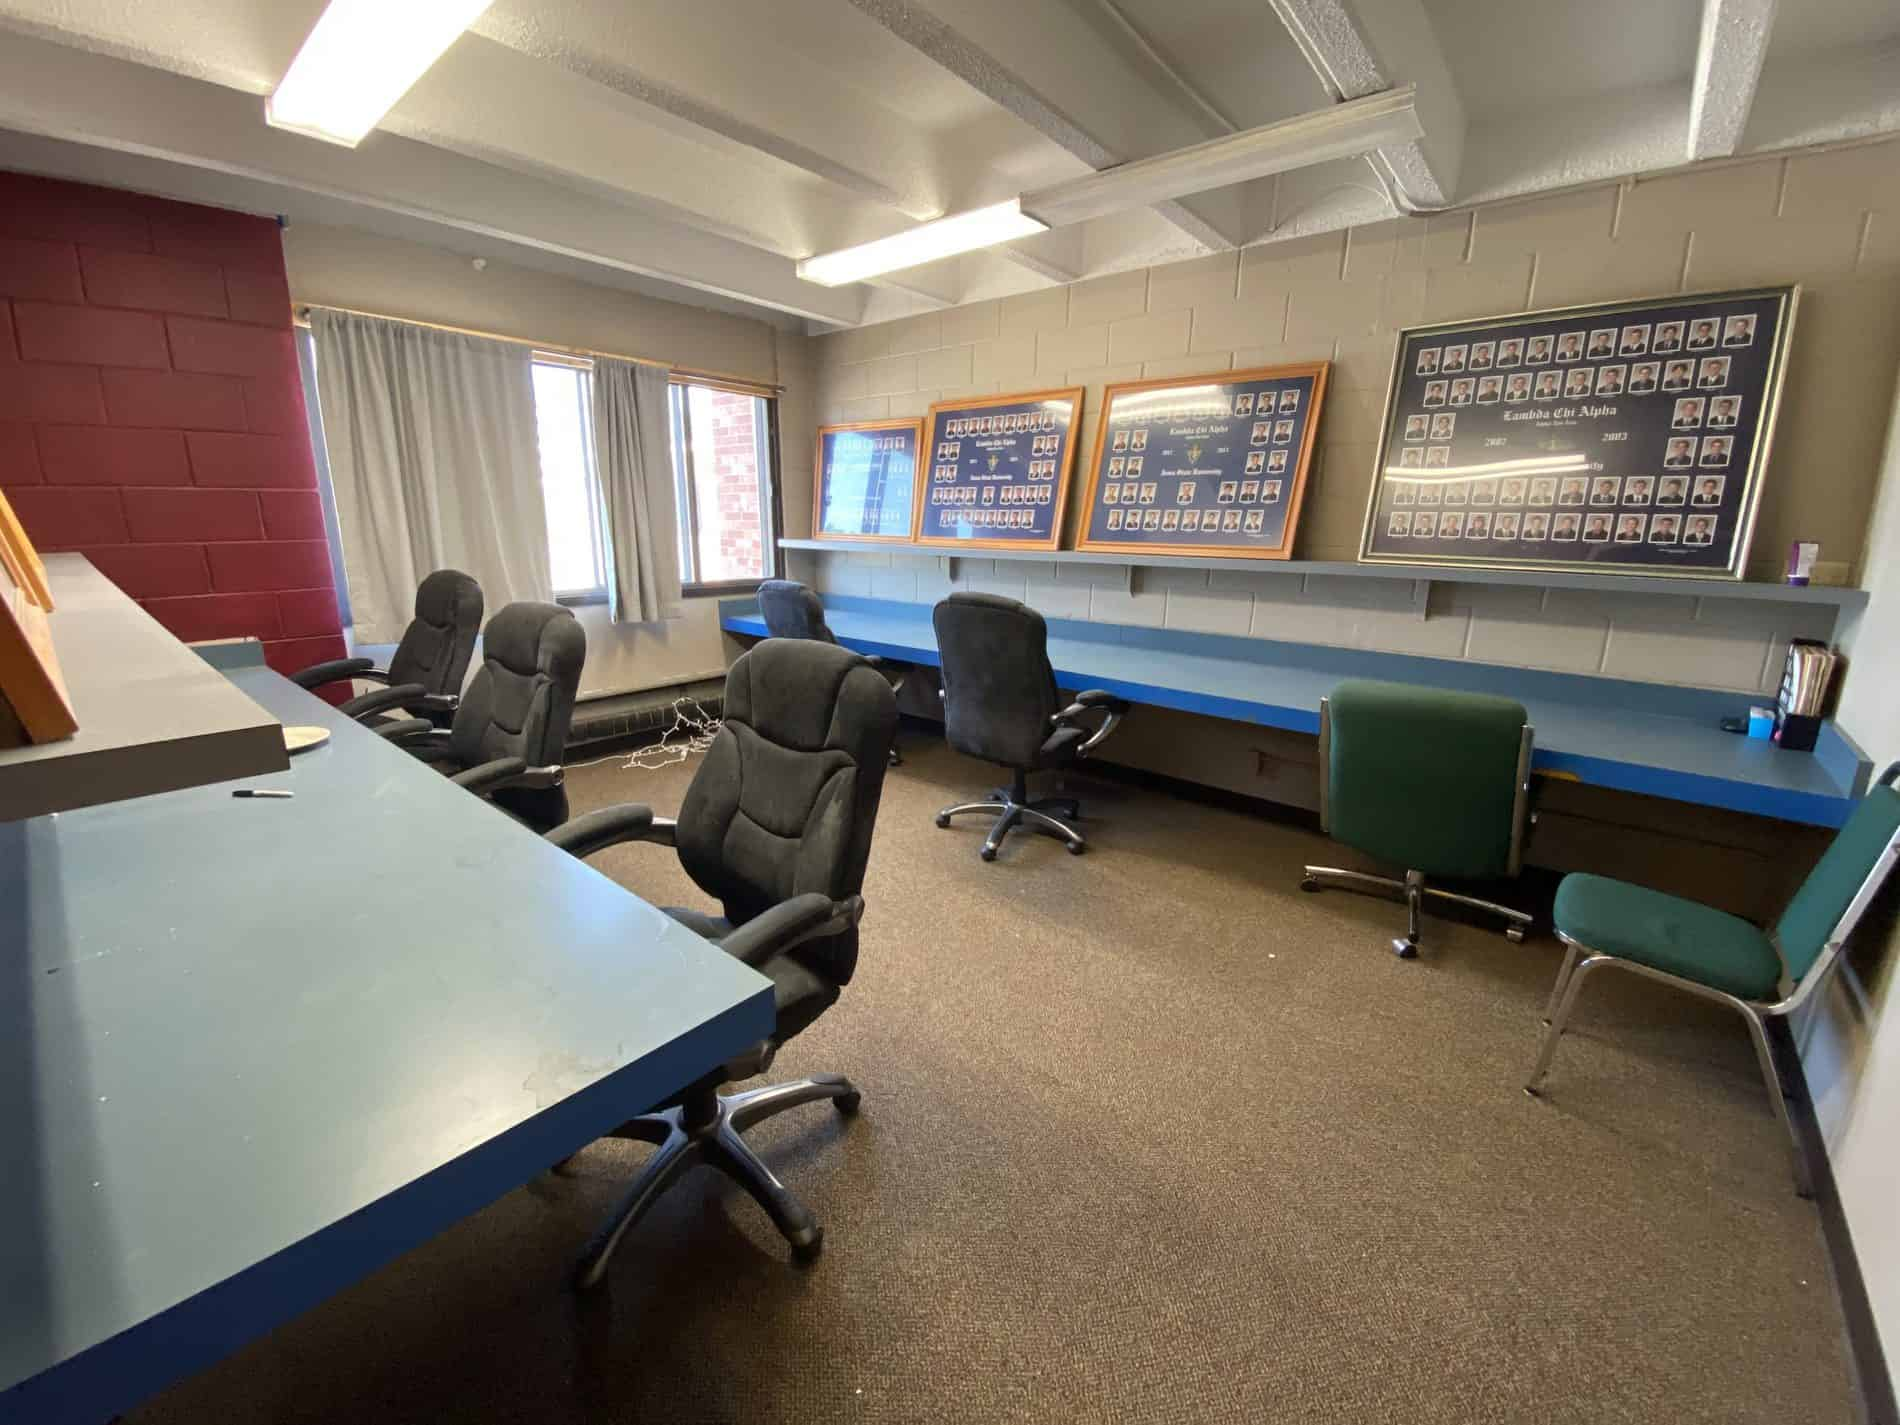 Lambda Chi Alpha's other study room. It is also open 24/7 for members to study and conduct other professional business.